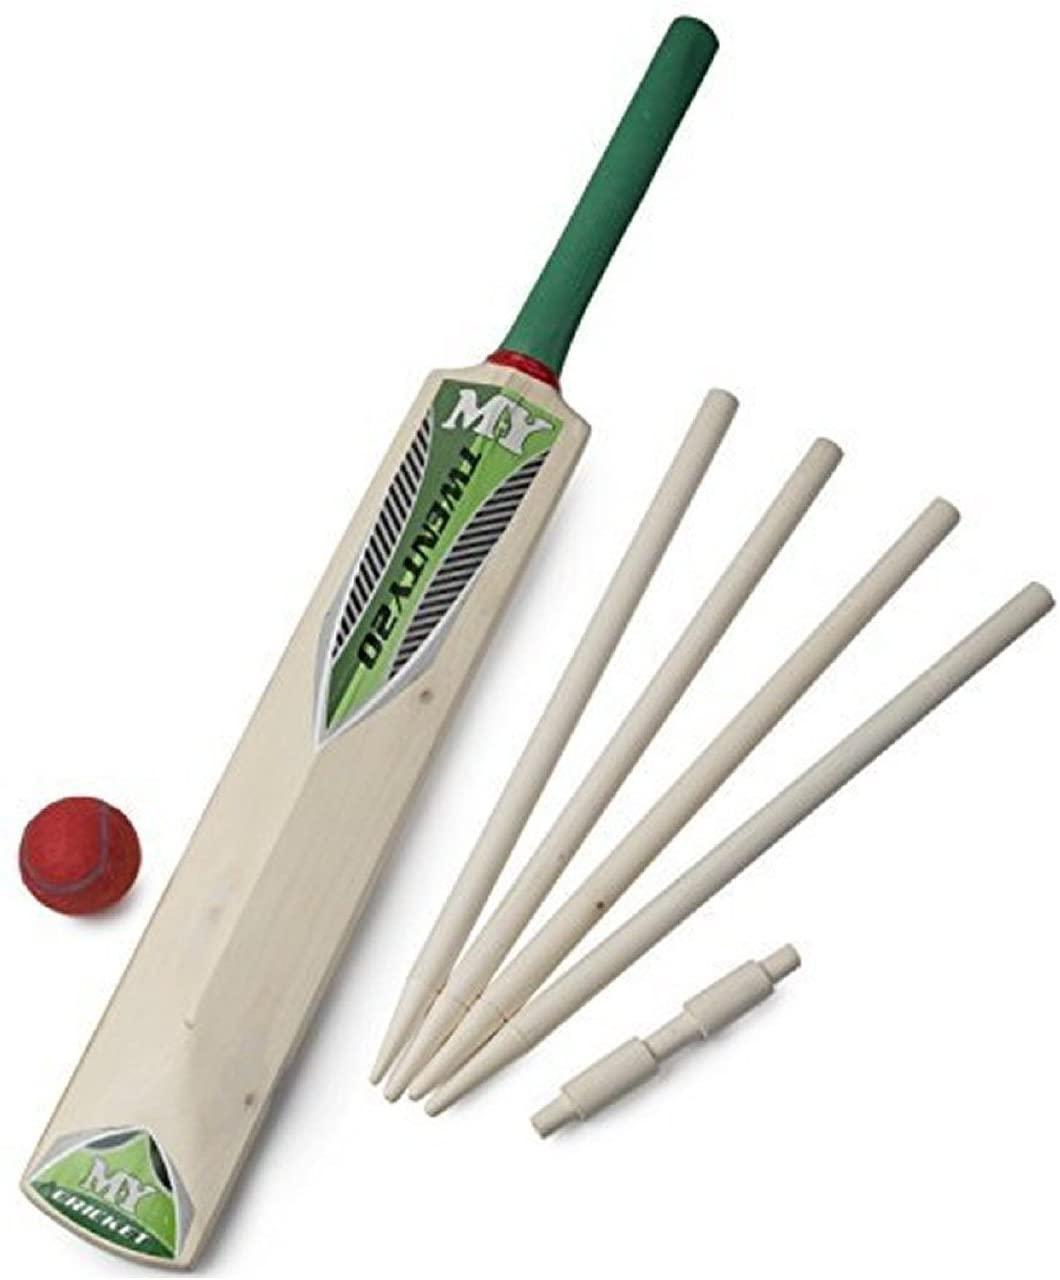 M.Y Size 5 Cricket Set In Mesh Carry Bag The Bubble Room Toy Store Skerries Dublin